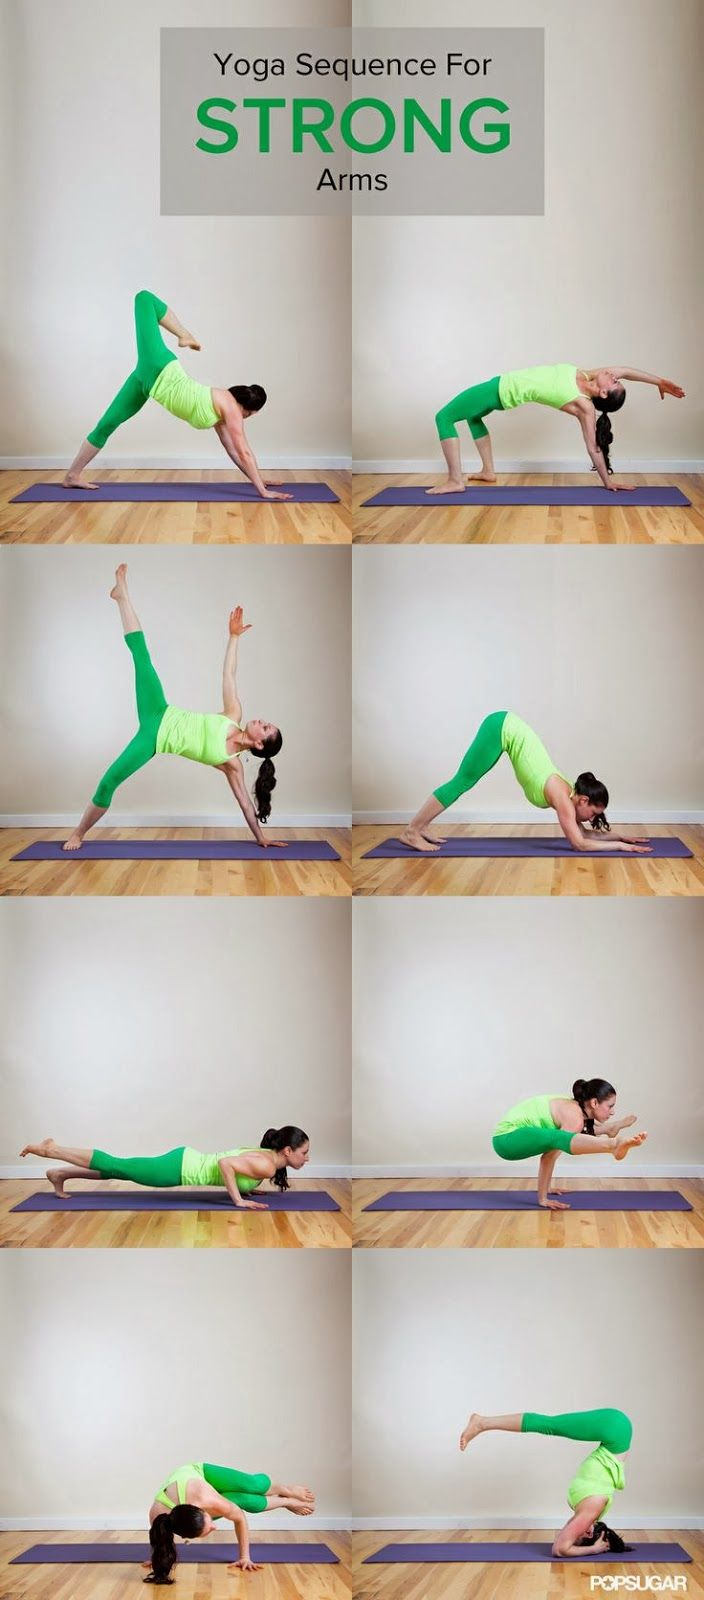 Yoga sequence for strong arms @Rachel Taylor ...um but where are the poses to get my arms strong enough to DO these arm strengthening poses??